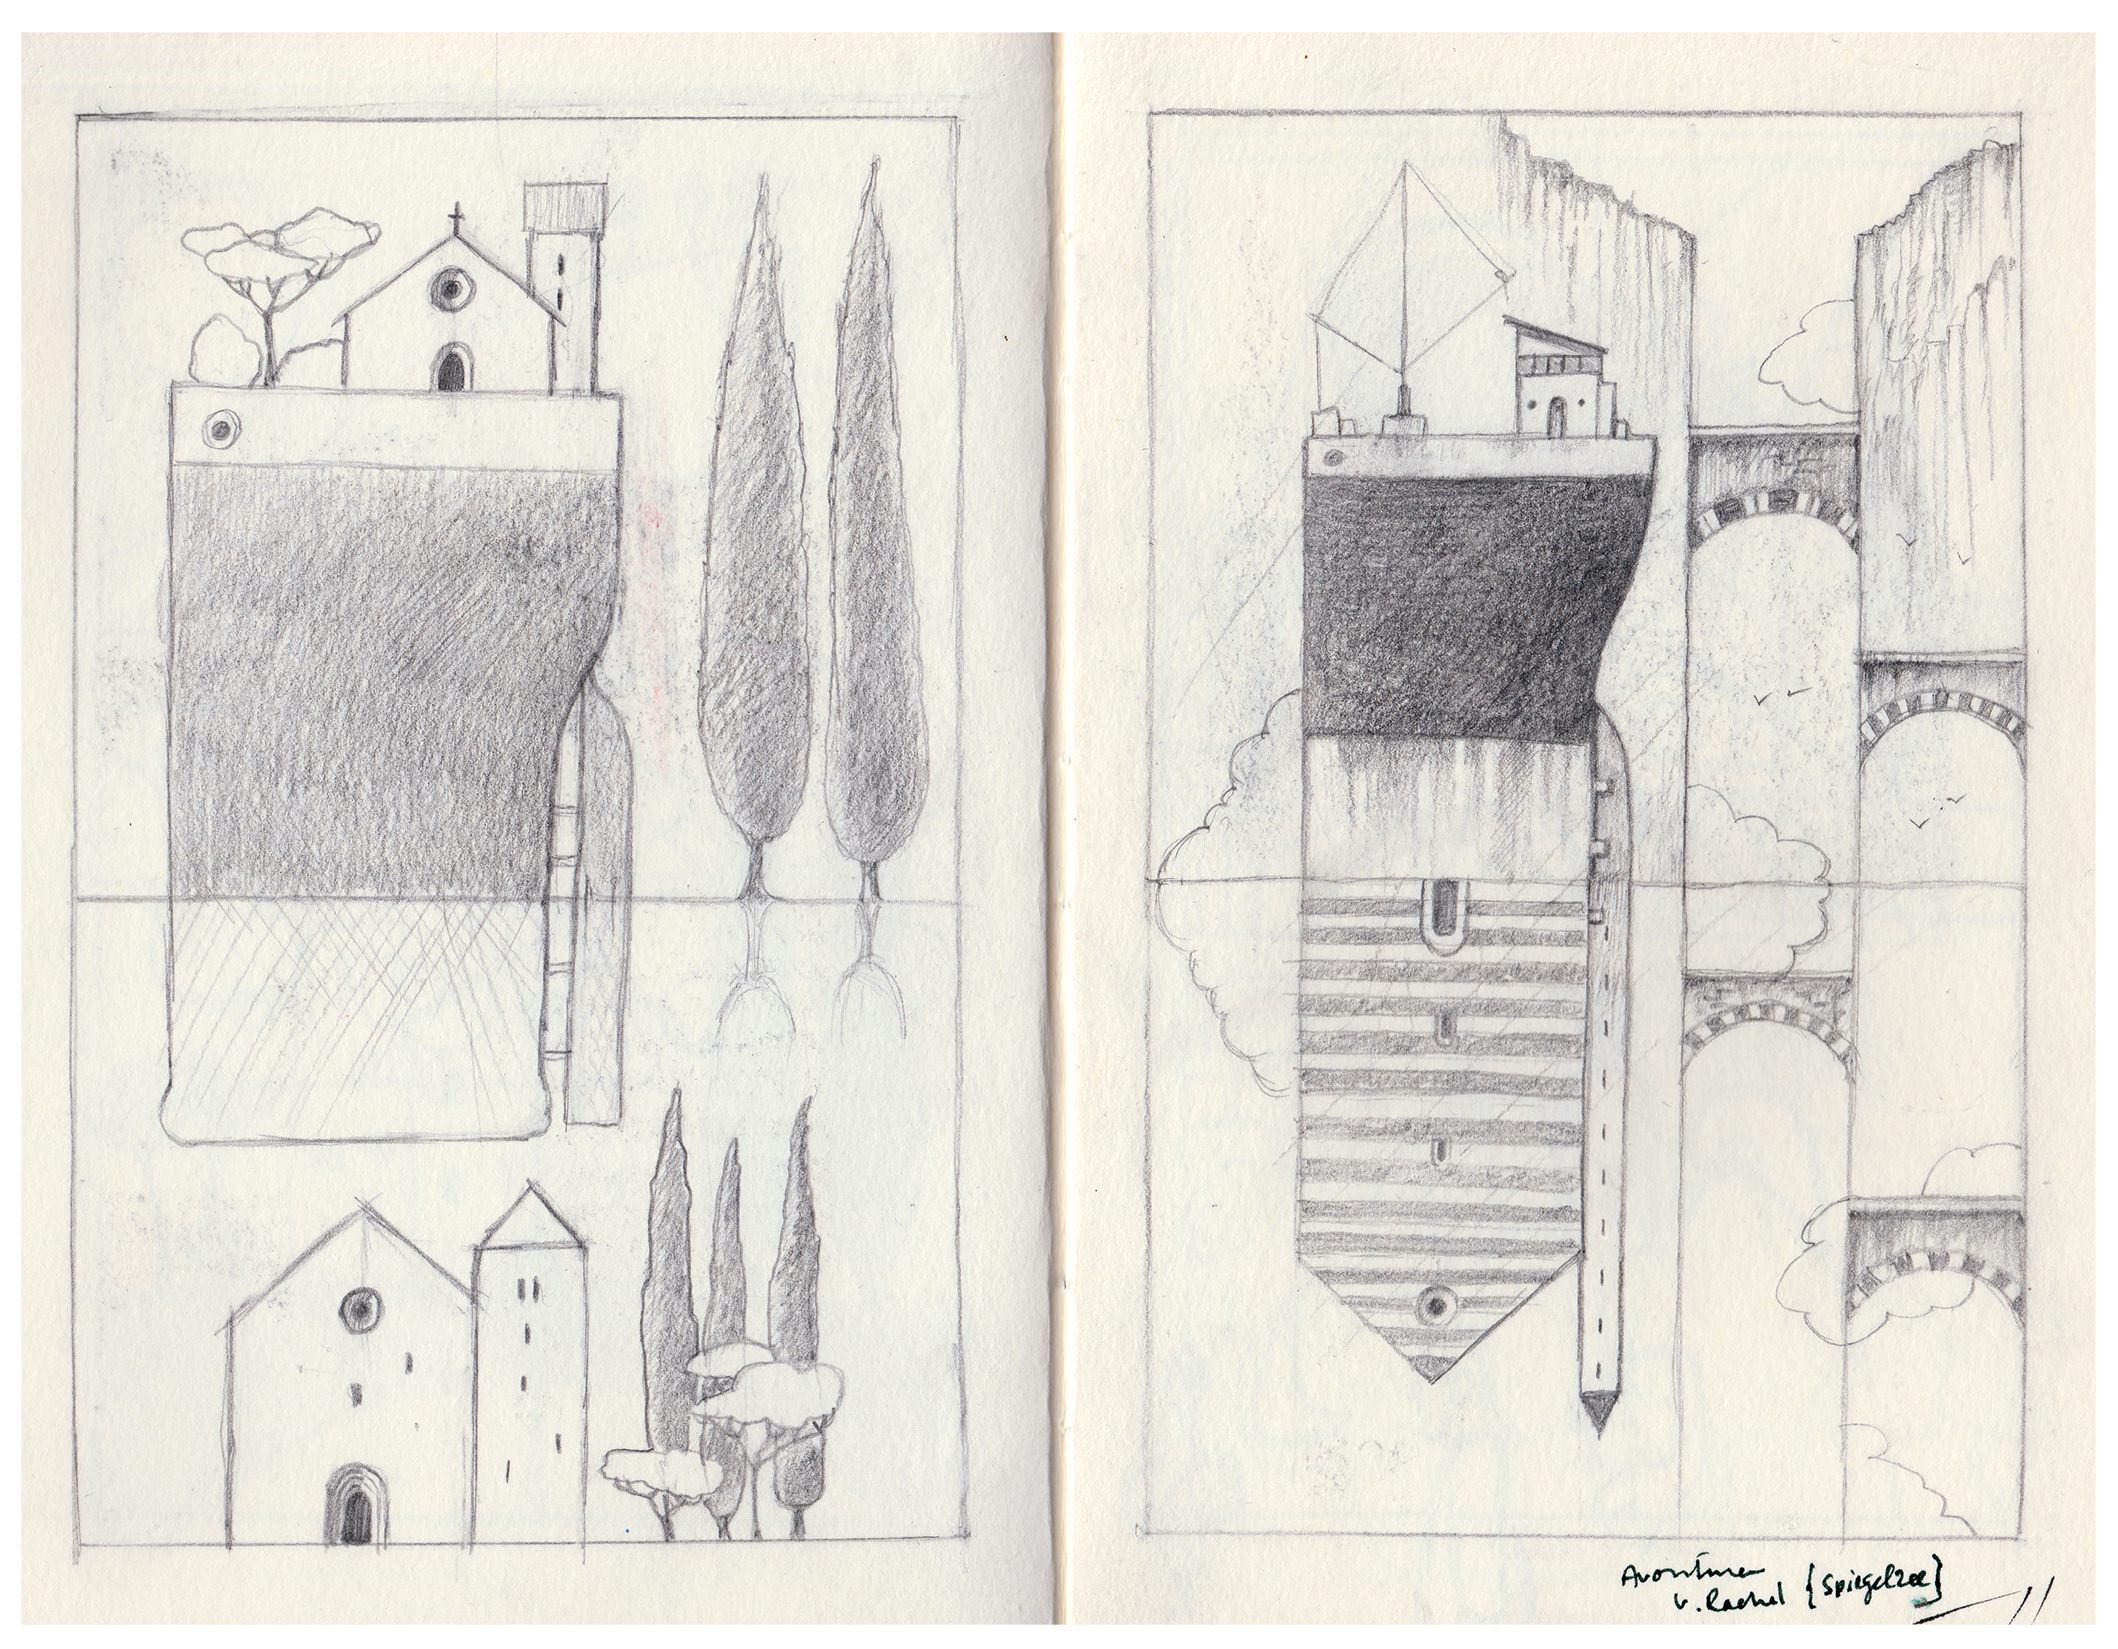 Page from my Hahnemühle sketchbook. Both sketches made it into paintings.